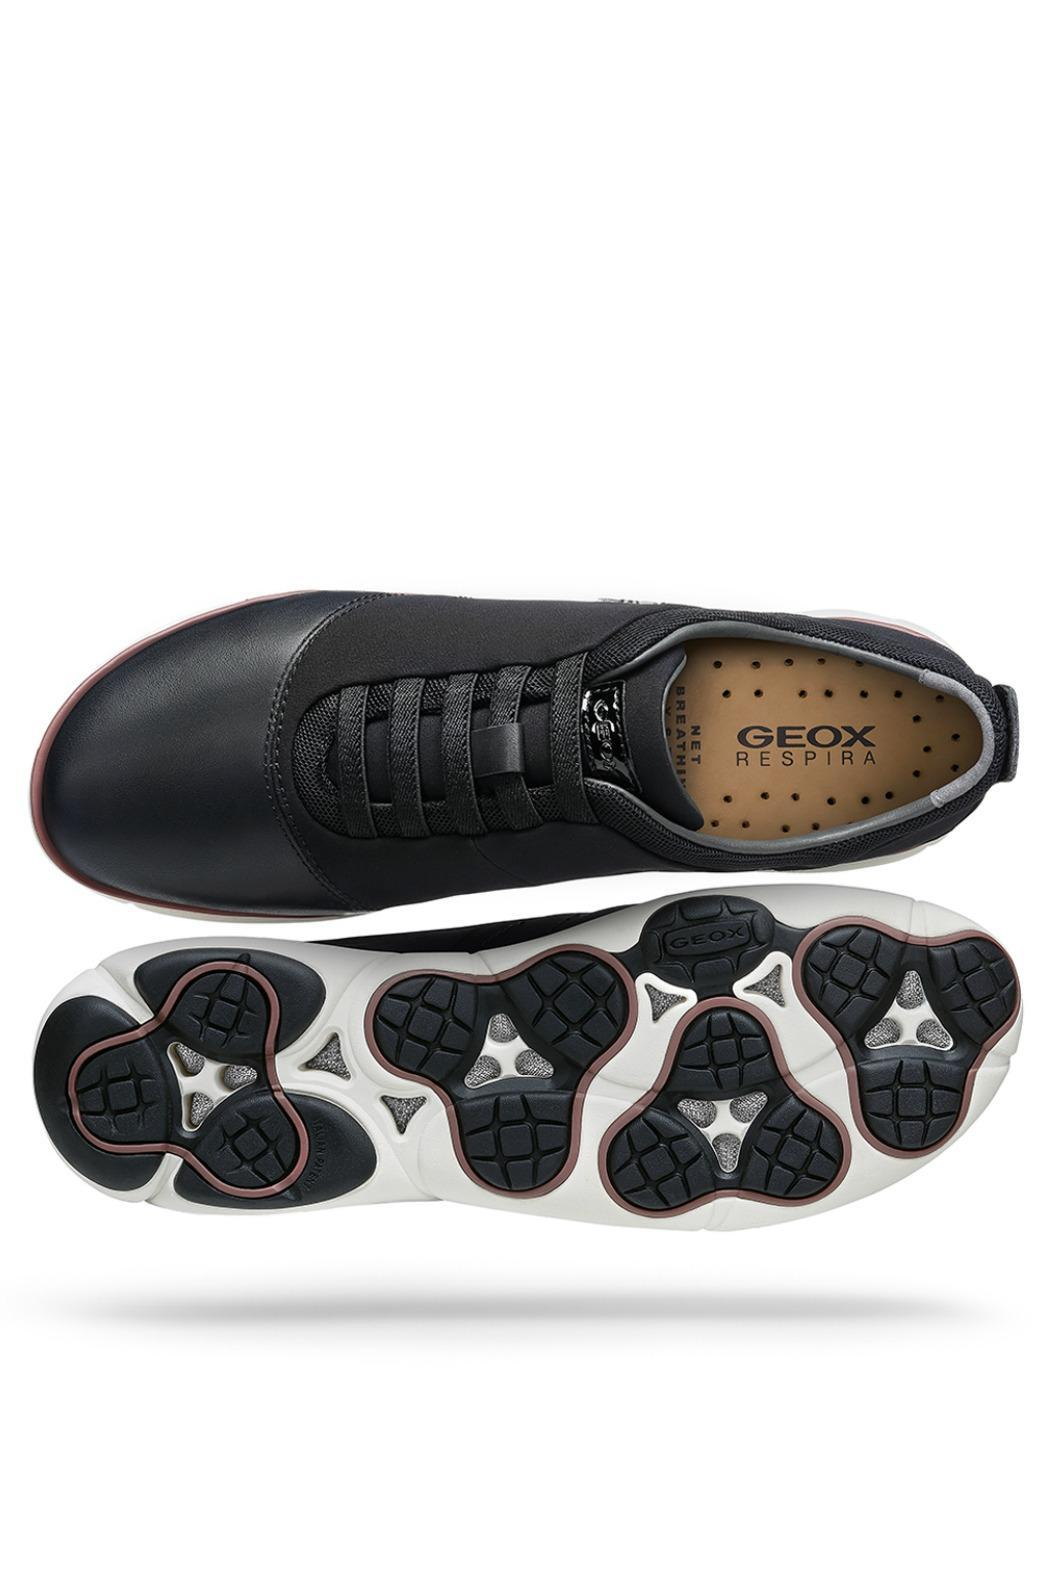 Geox Nebula Sneaker from Vancouver by Kalena's Italian Shoes